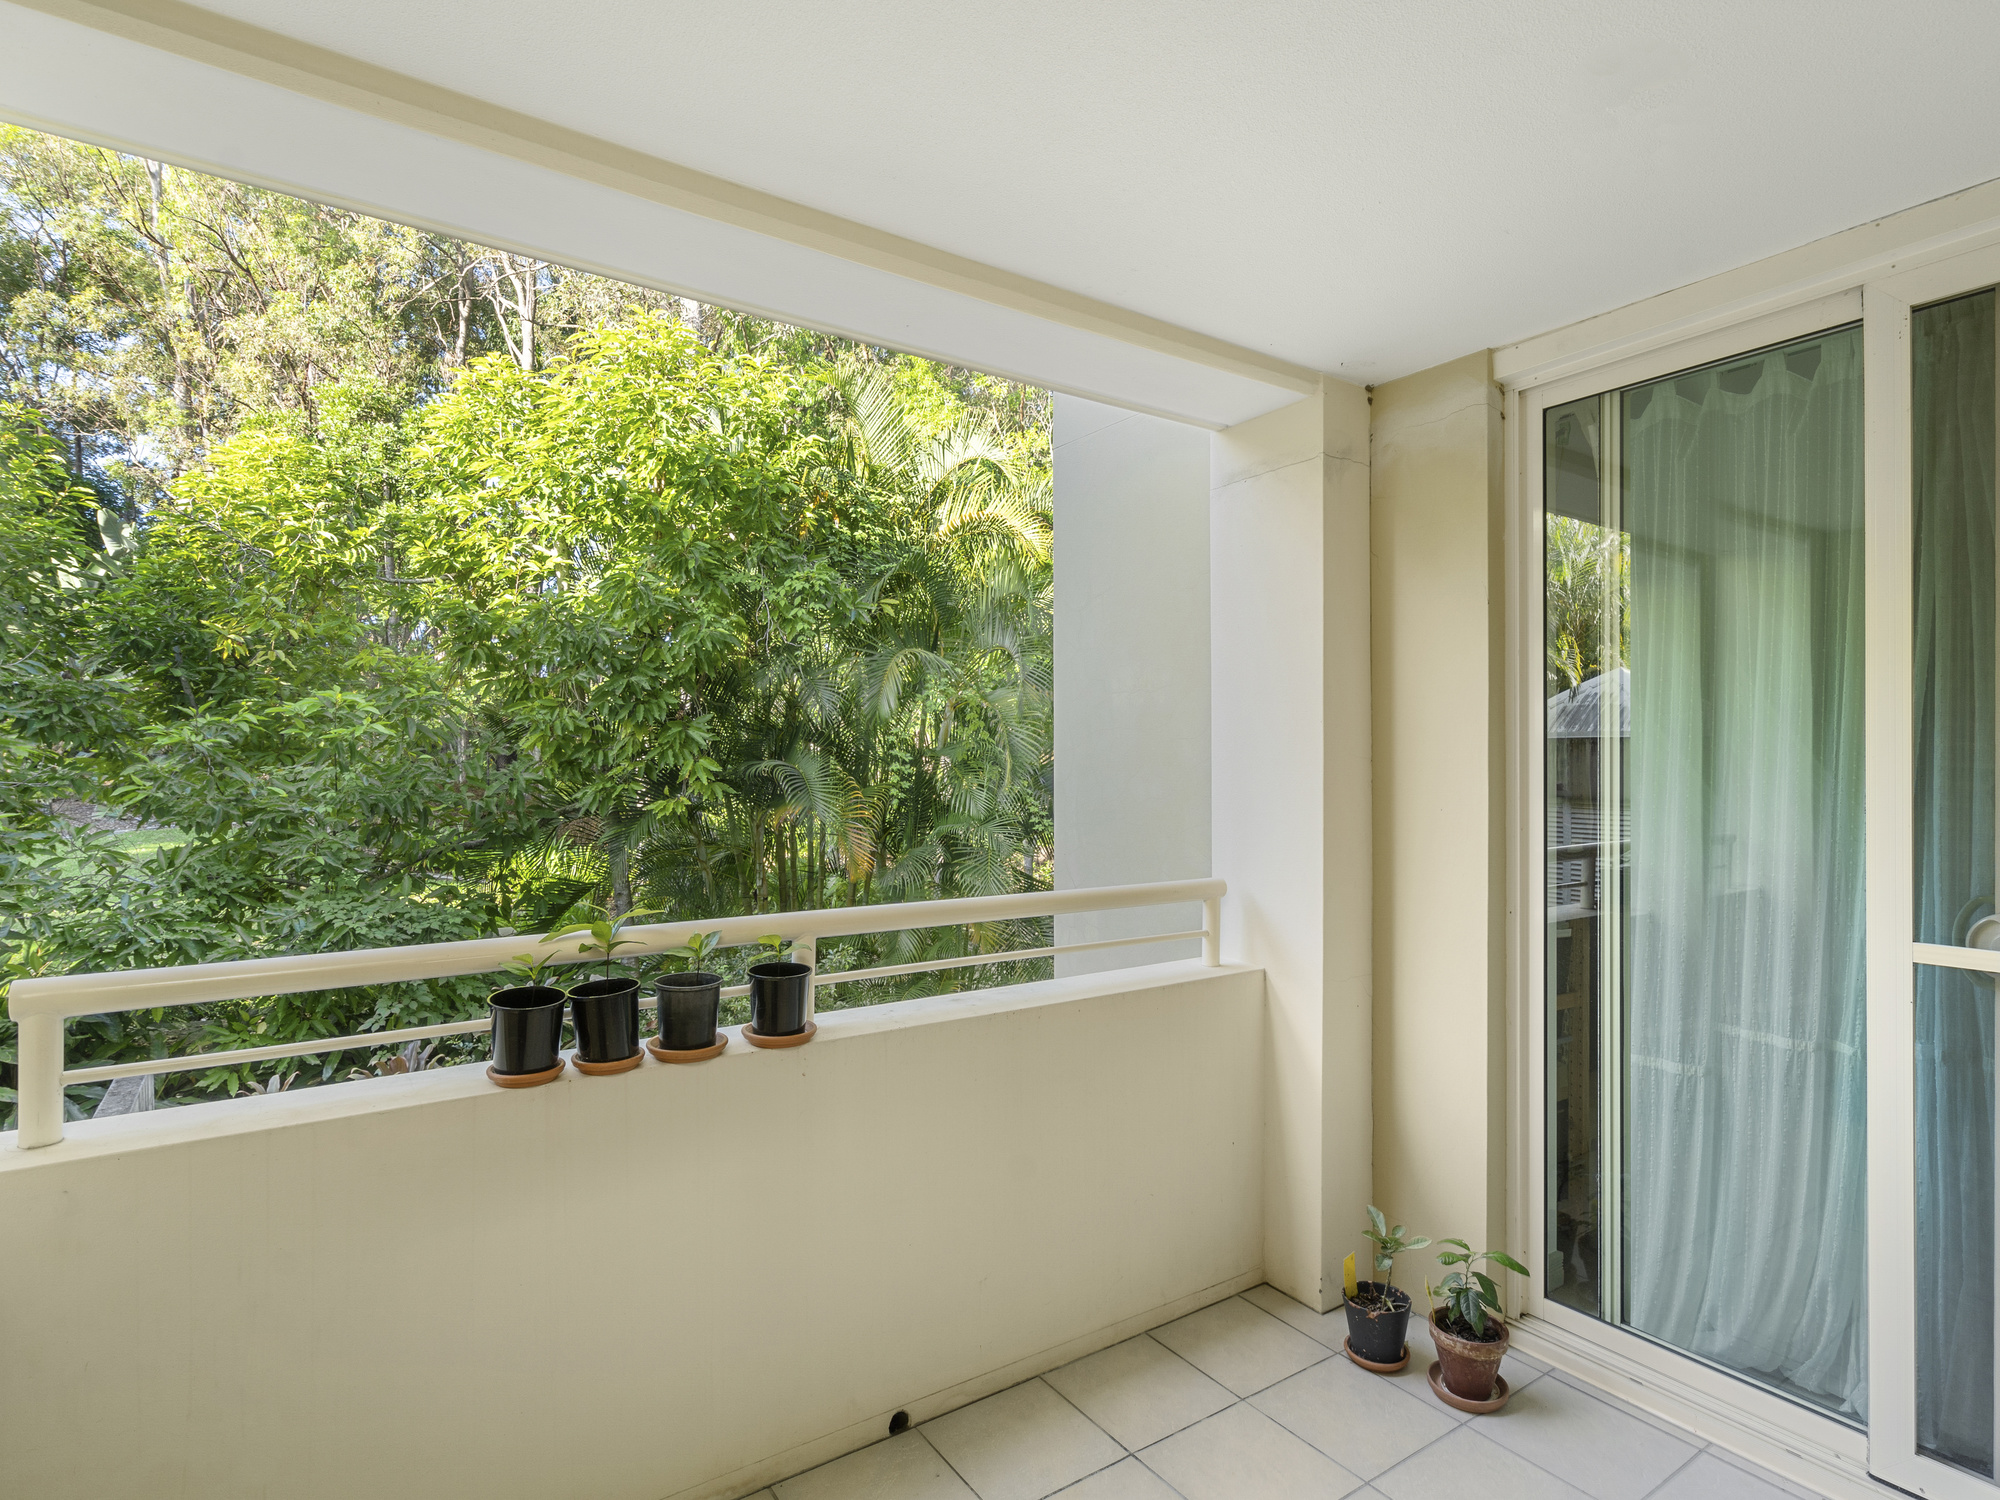 Real Estate | Gold Coast | Chevron Realty | 023 Open2view Id687061 4167 Ross Street